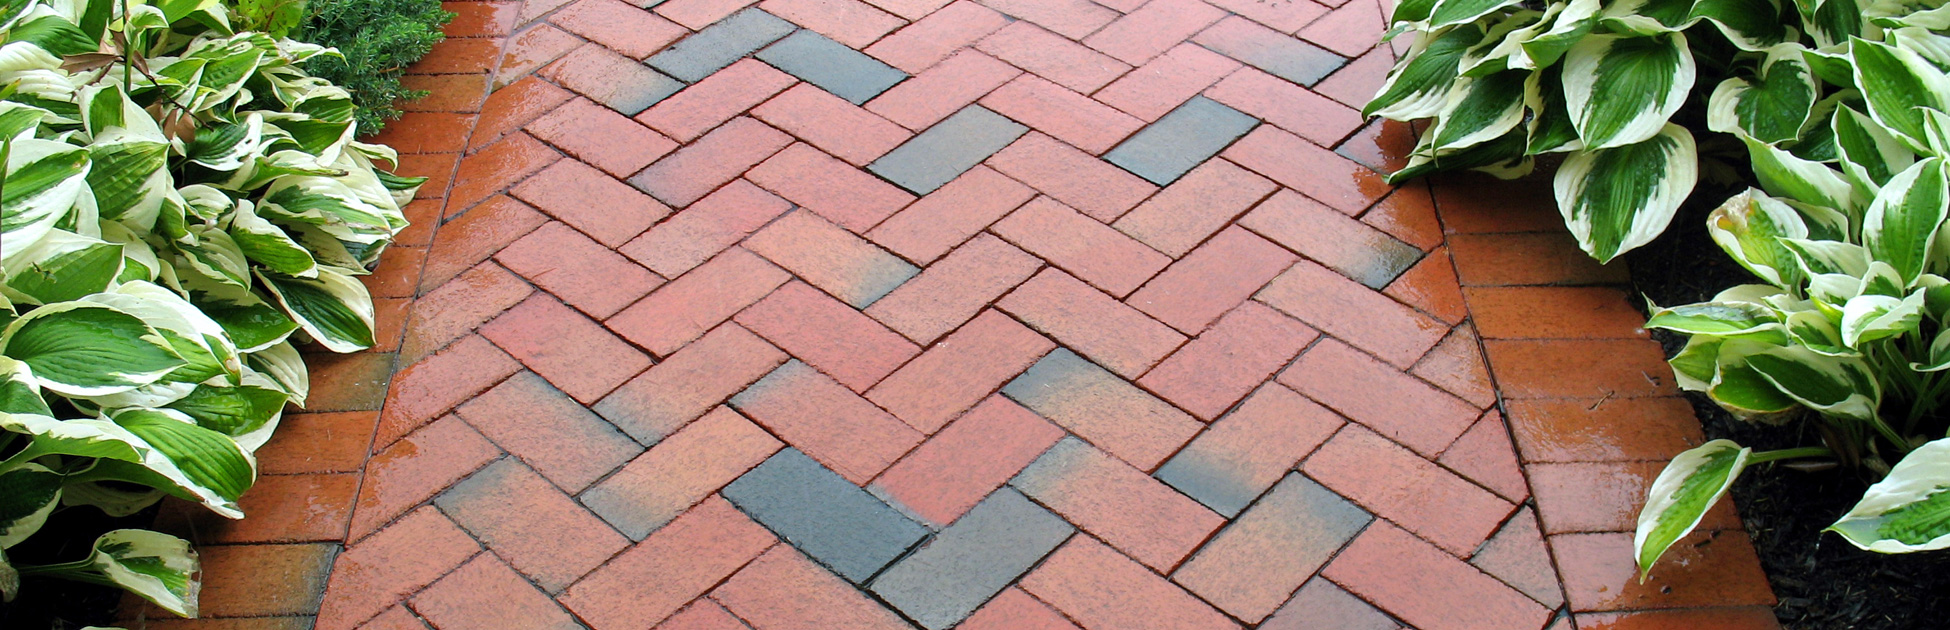 geometric design - brickwalk landscaping